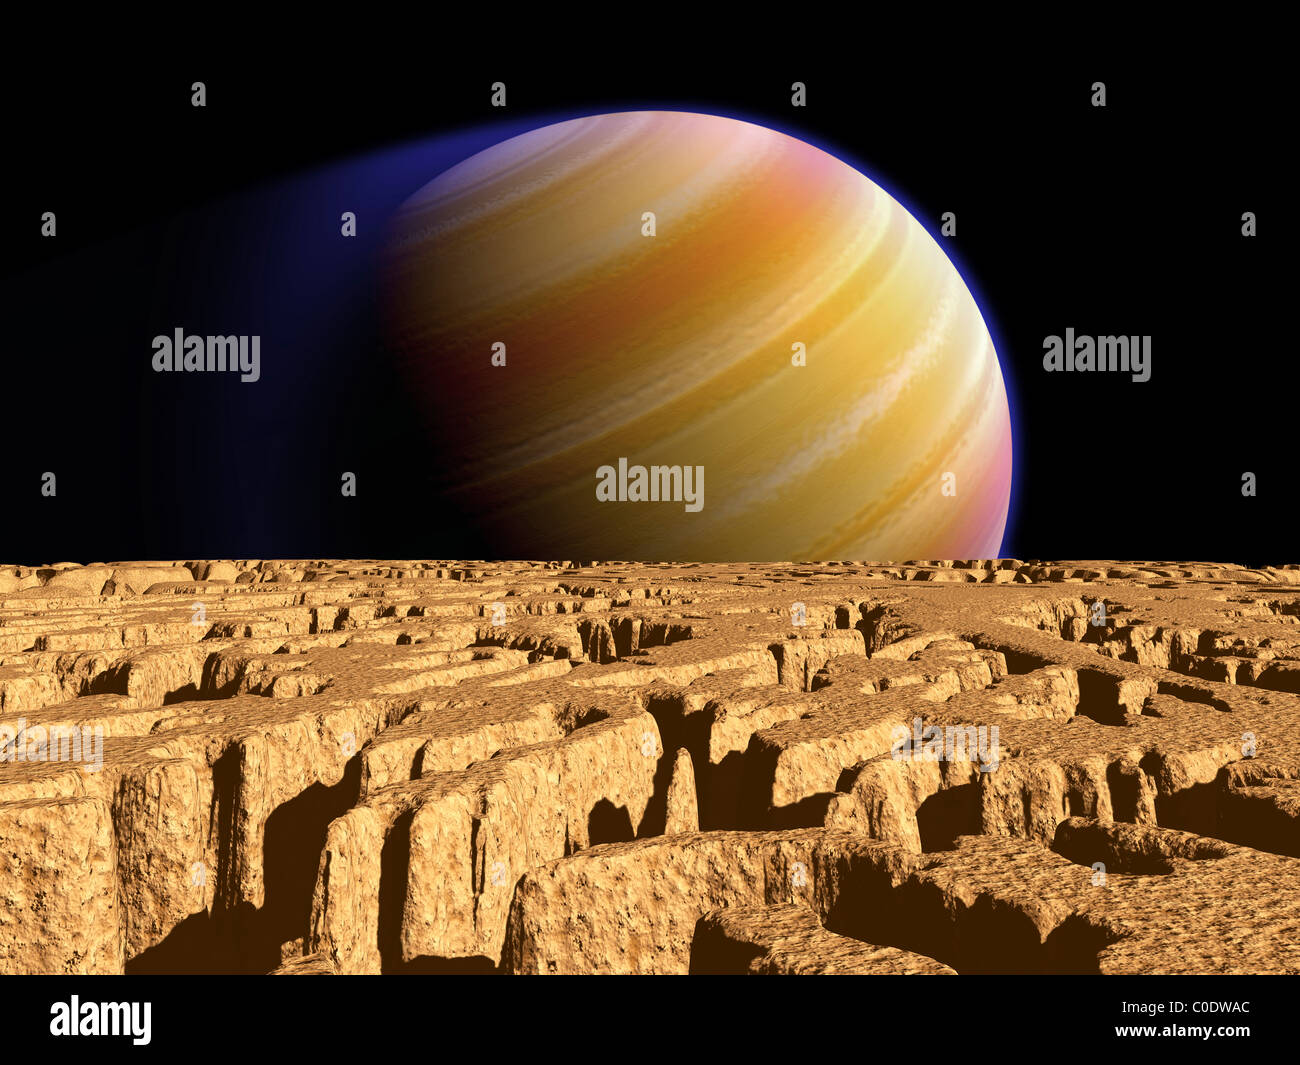 Artist's concept of extrasolar planet Tau Bootis b over a hypothetical moon. - Stock Image